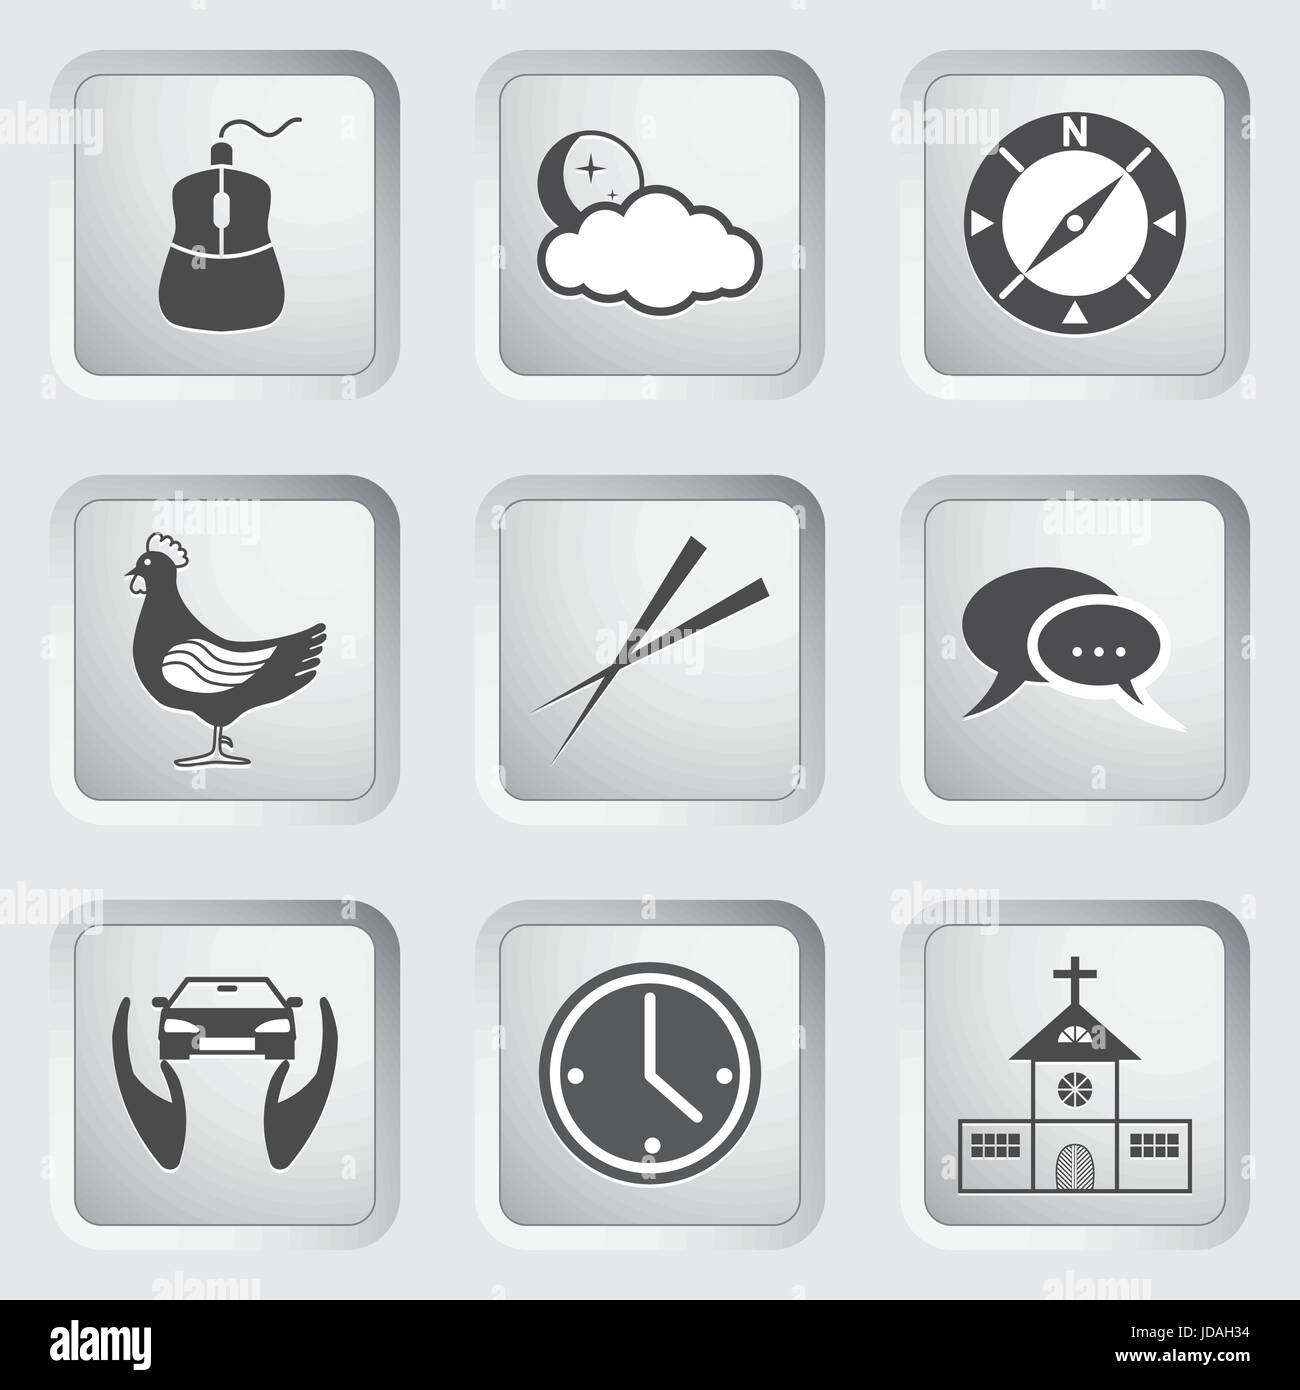 Icons on the buttons for Web Design and Mobile Applications Set 4. Vector illustration. - Stock Image